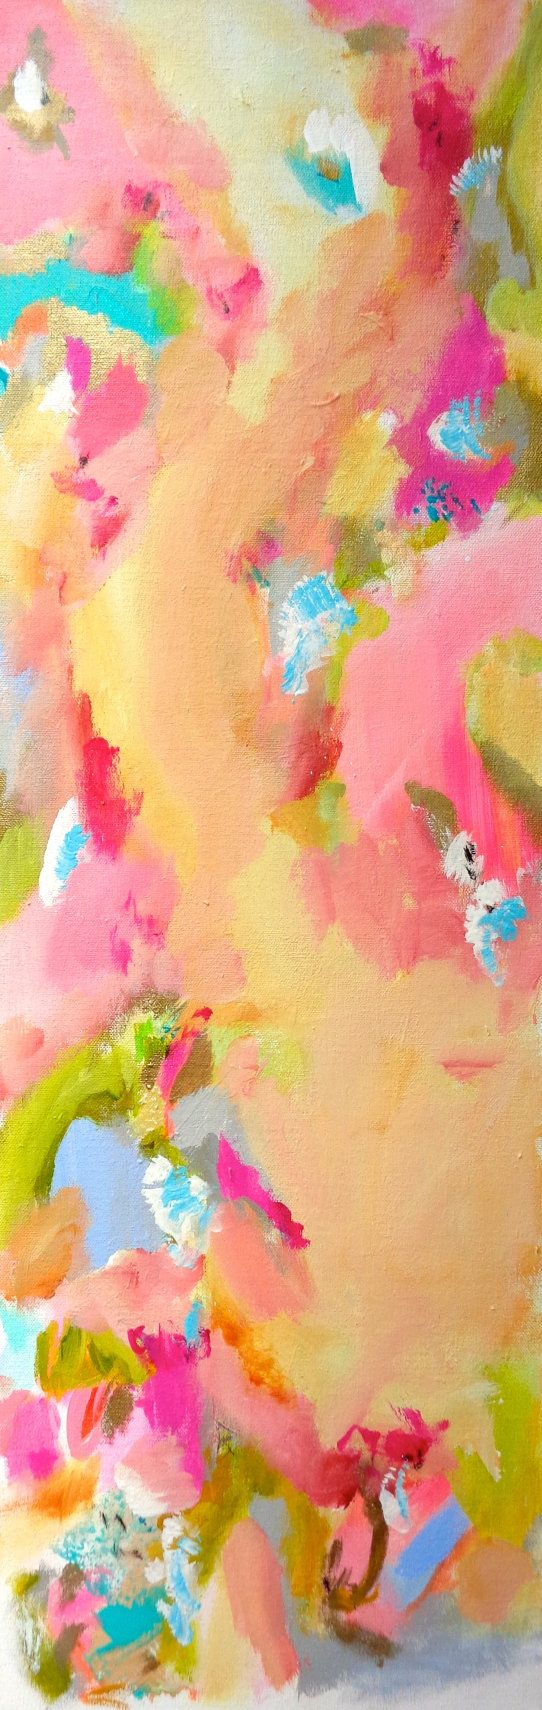 Abstract floral painting wall botanical susan skelley for Cute abstract art